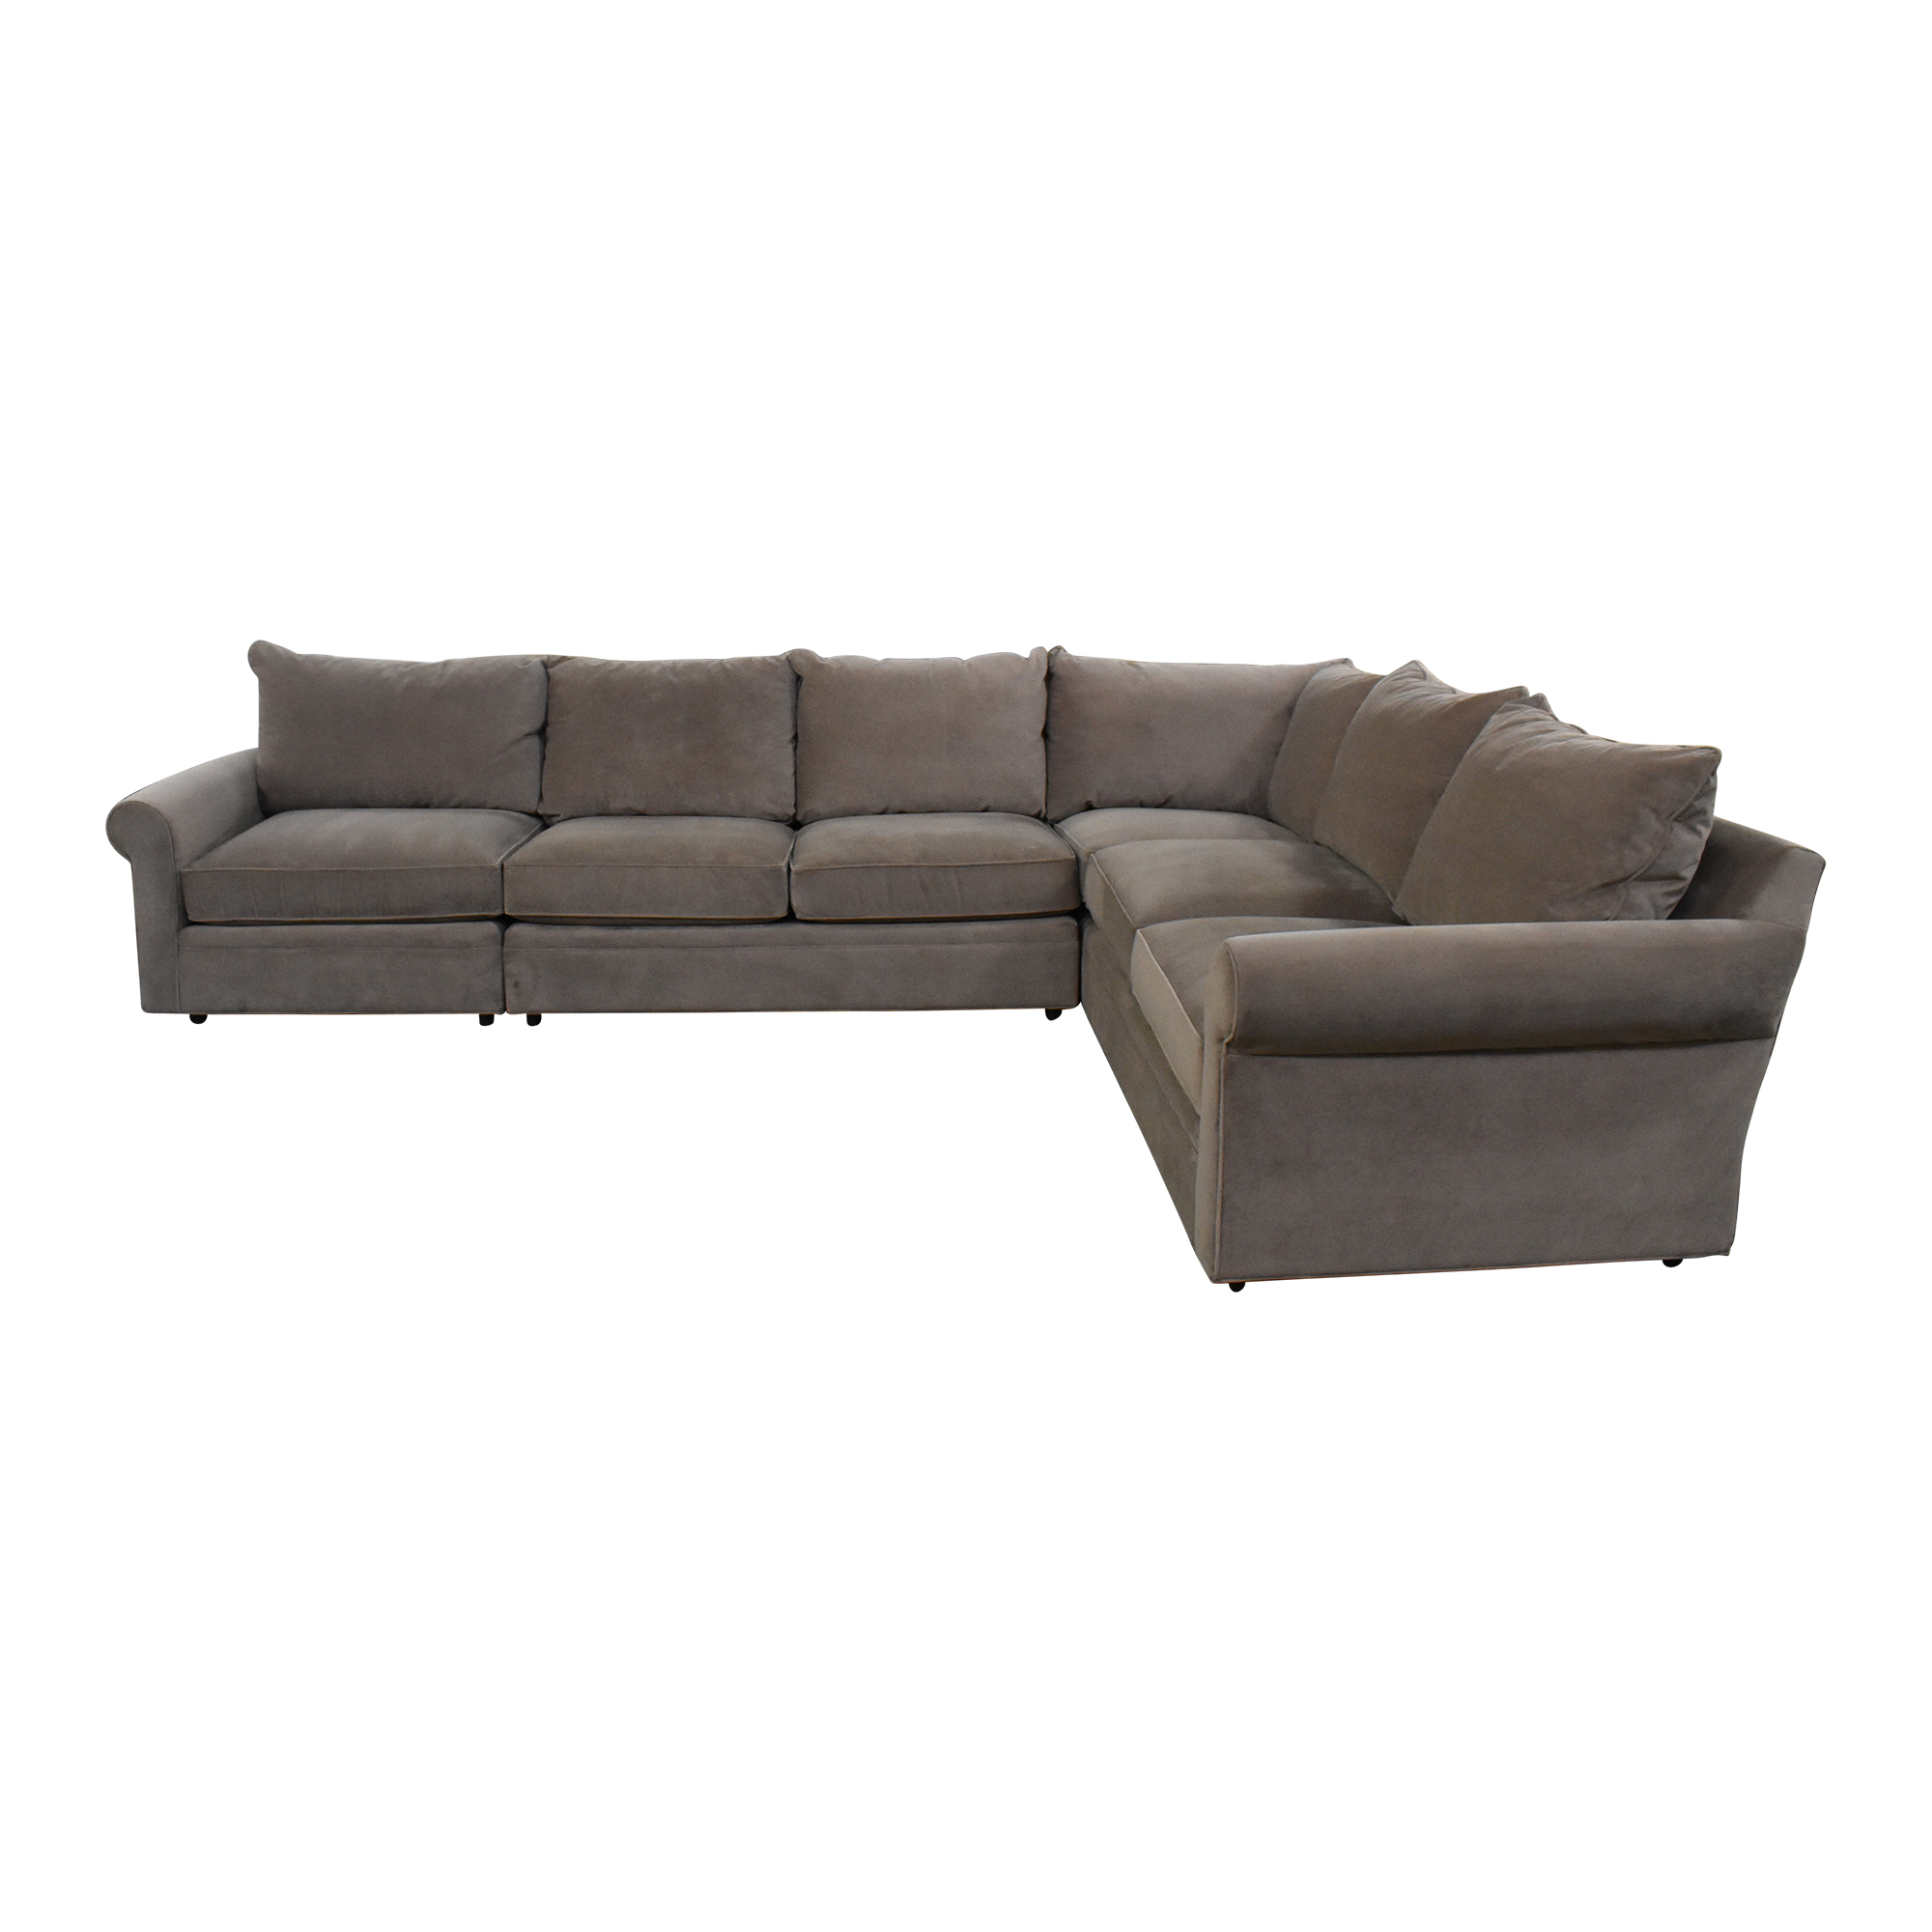 Macy's Macy's Modern Concepts L Shaped Sectional Sofa second hand